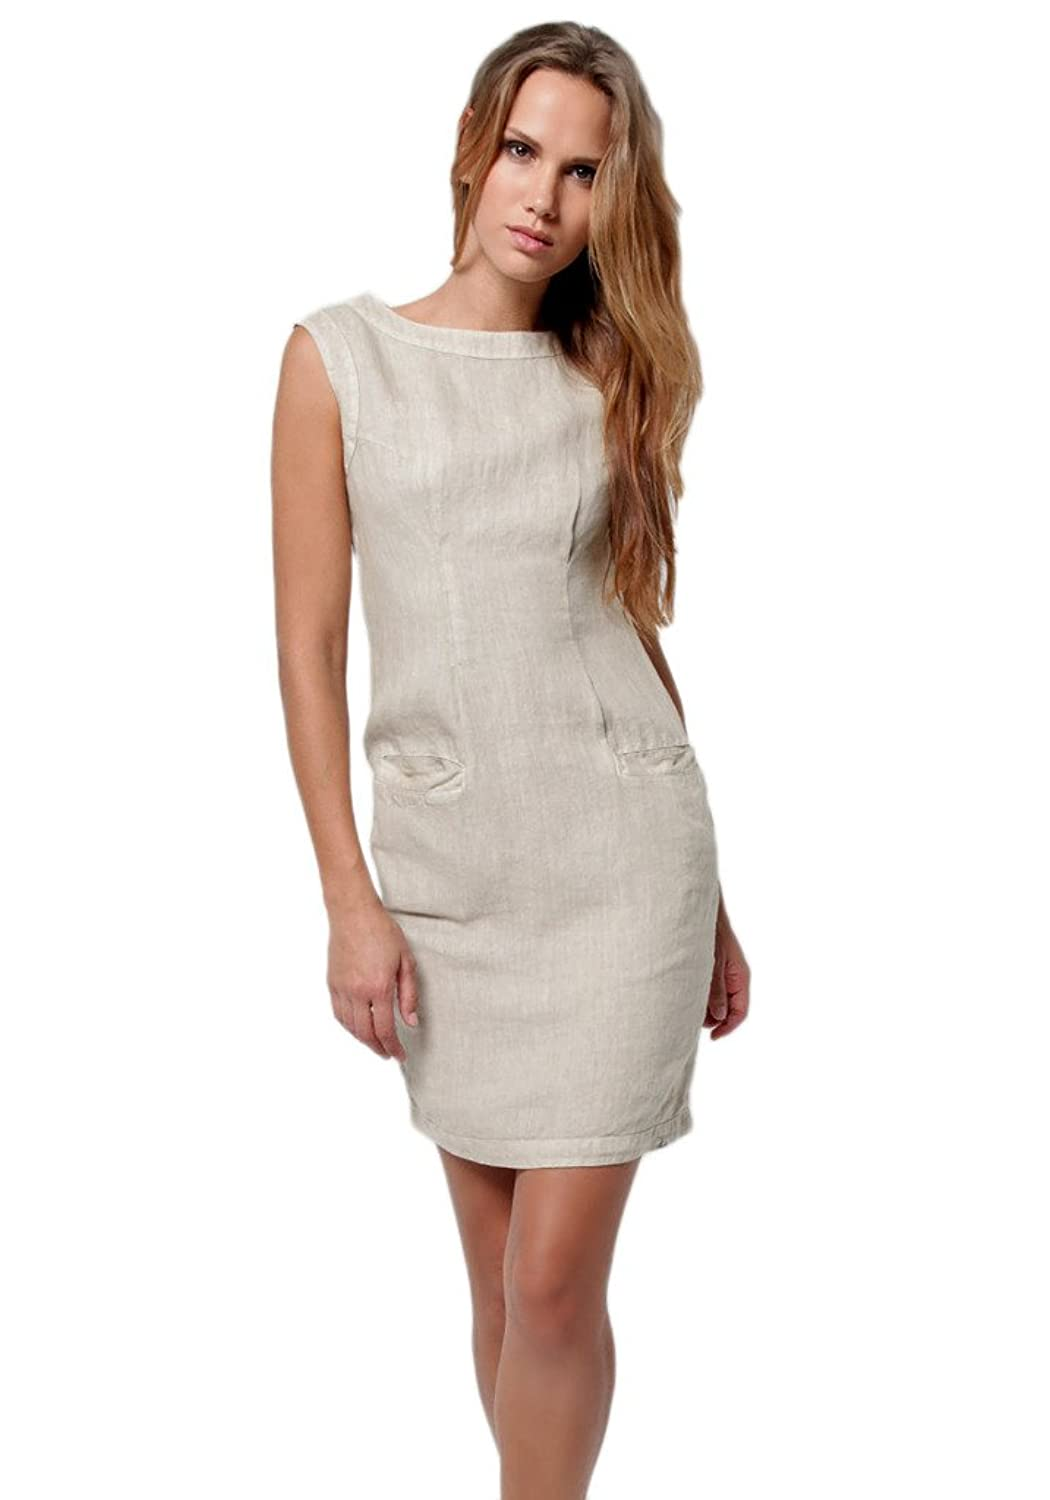 Claudio Milano Women's 100% Linen Fitted Dress with Pockets